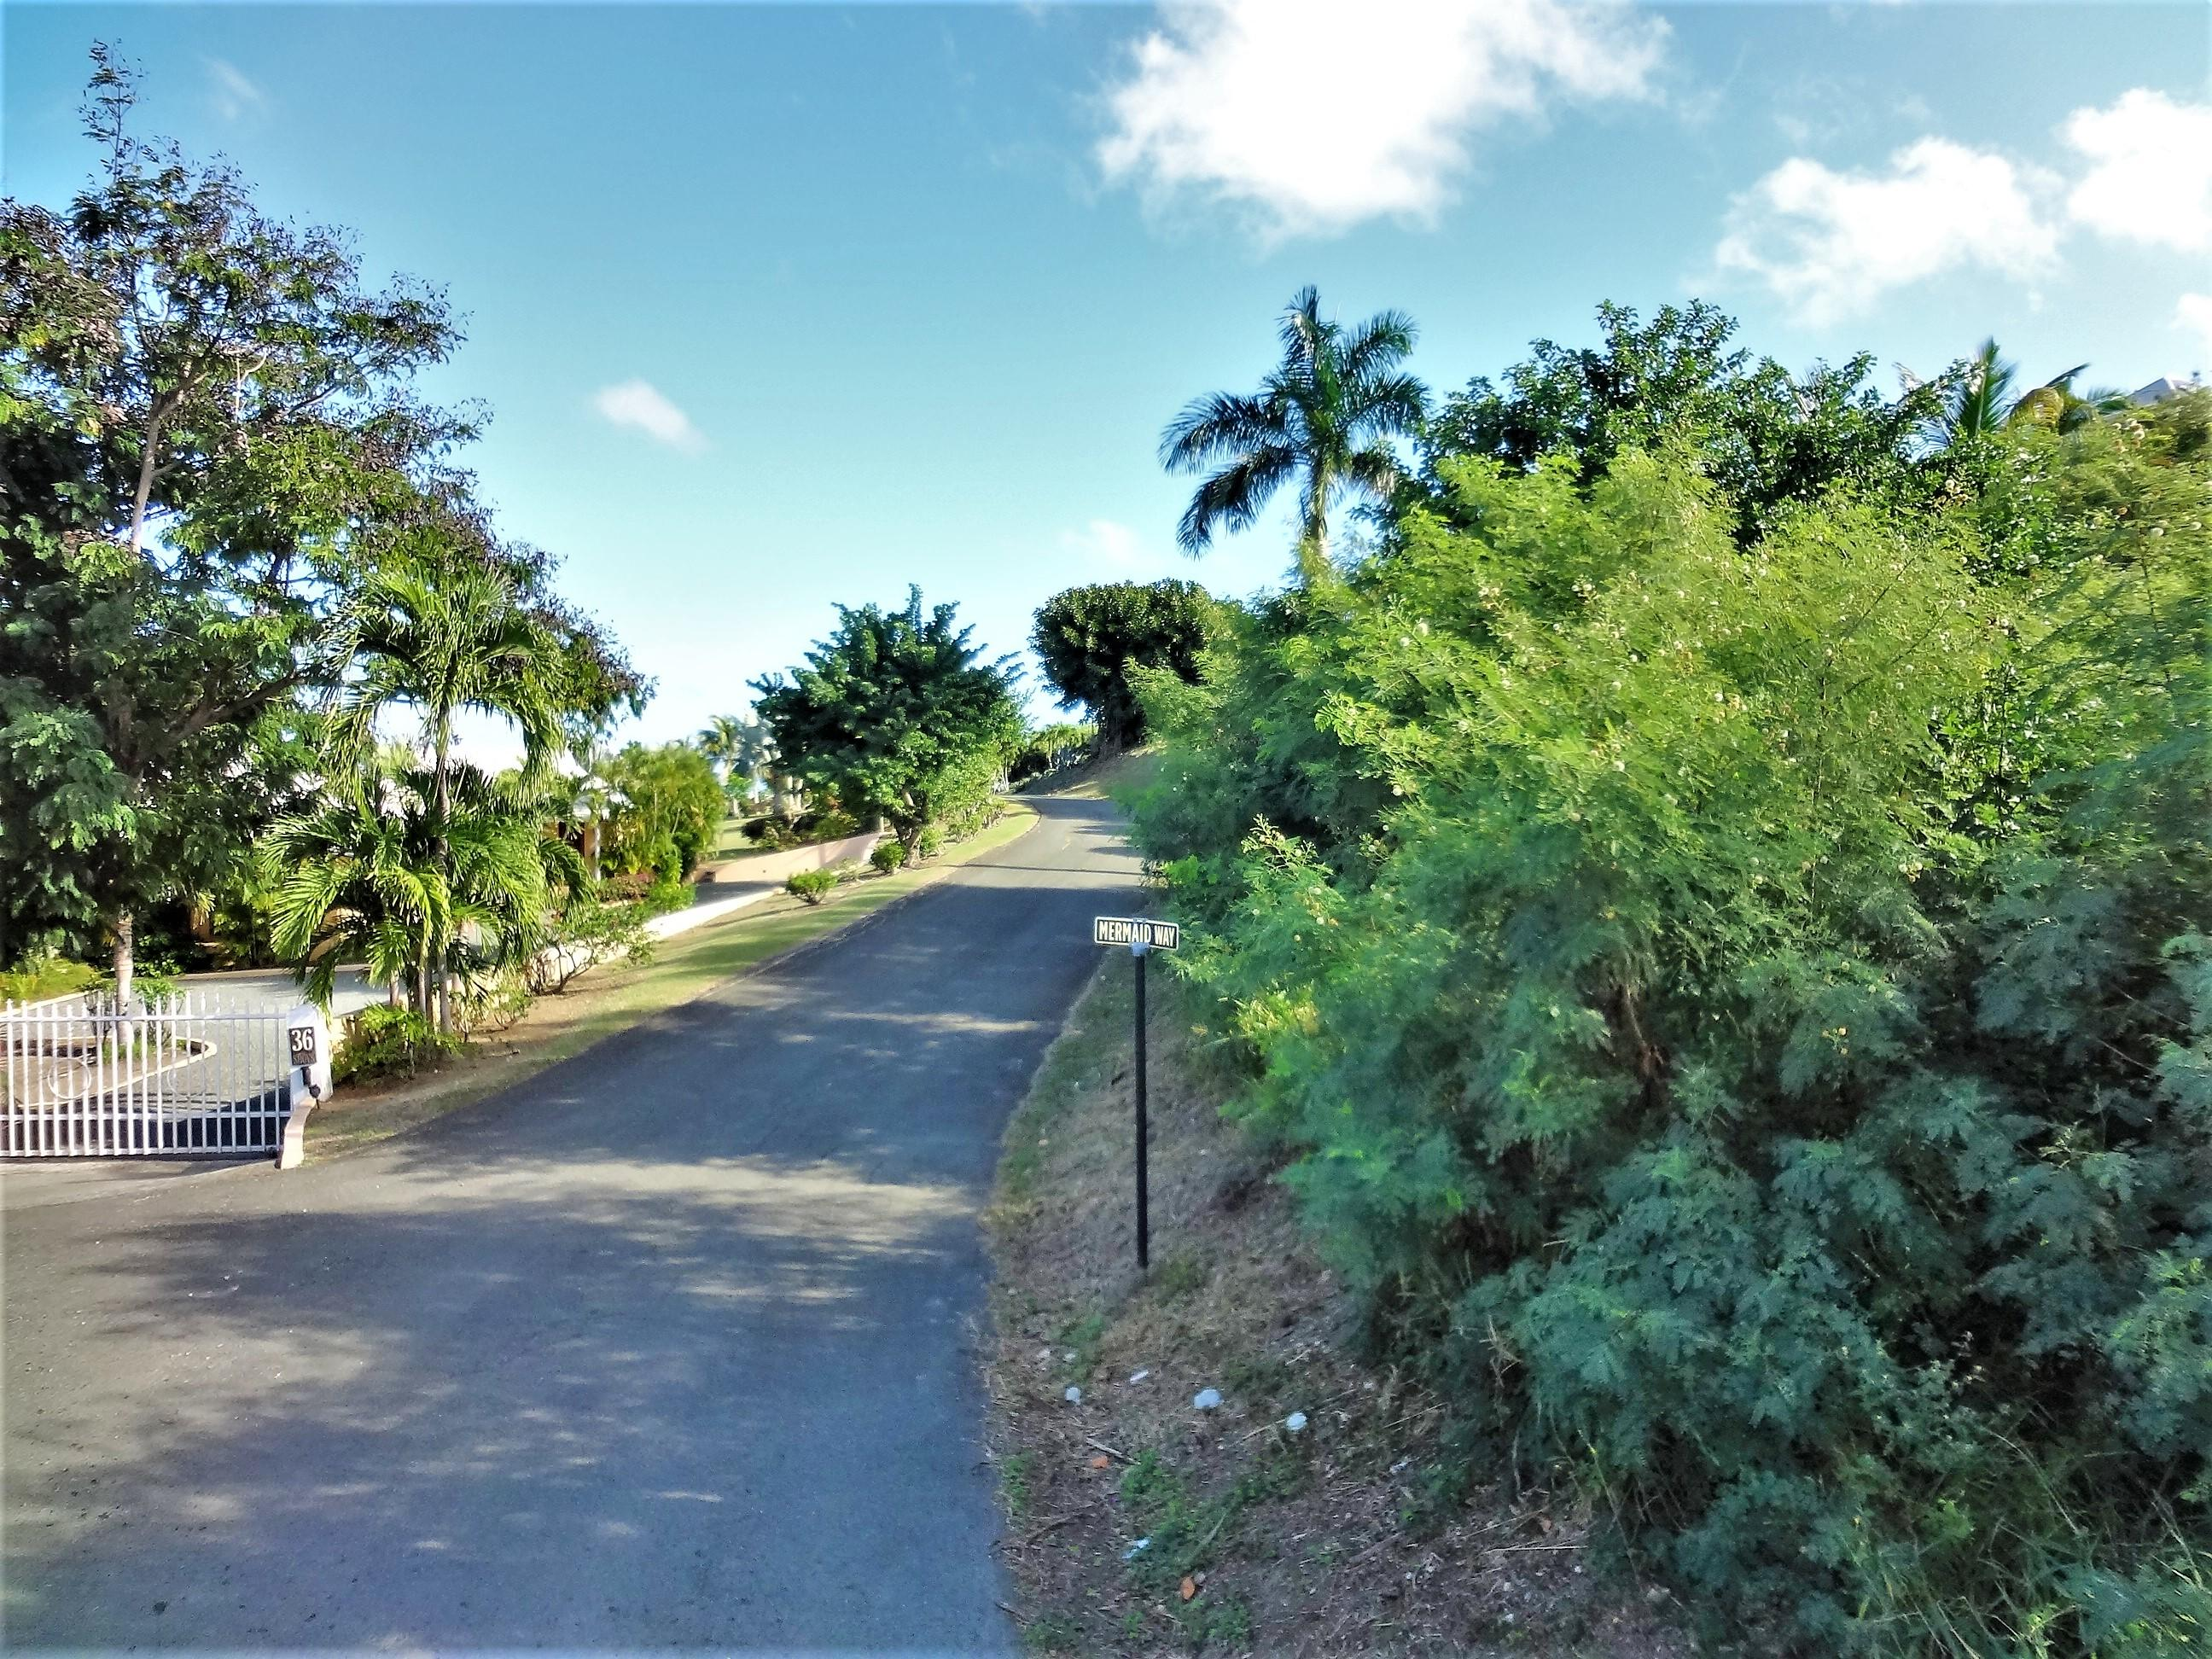 Additional photo for property listing at 39 Shoys (The) EA 39 Shoys (The) EA St Croix, Virgin Islands 00820 United States Virgin Islands